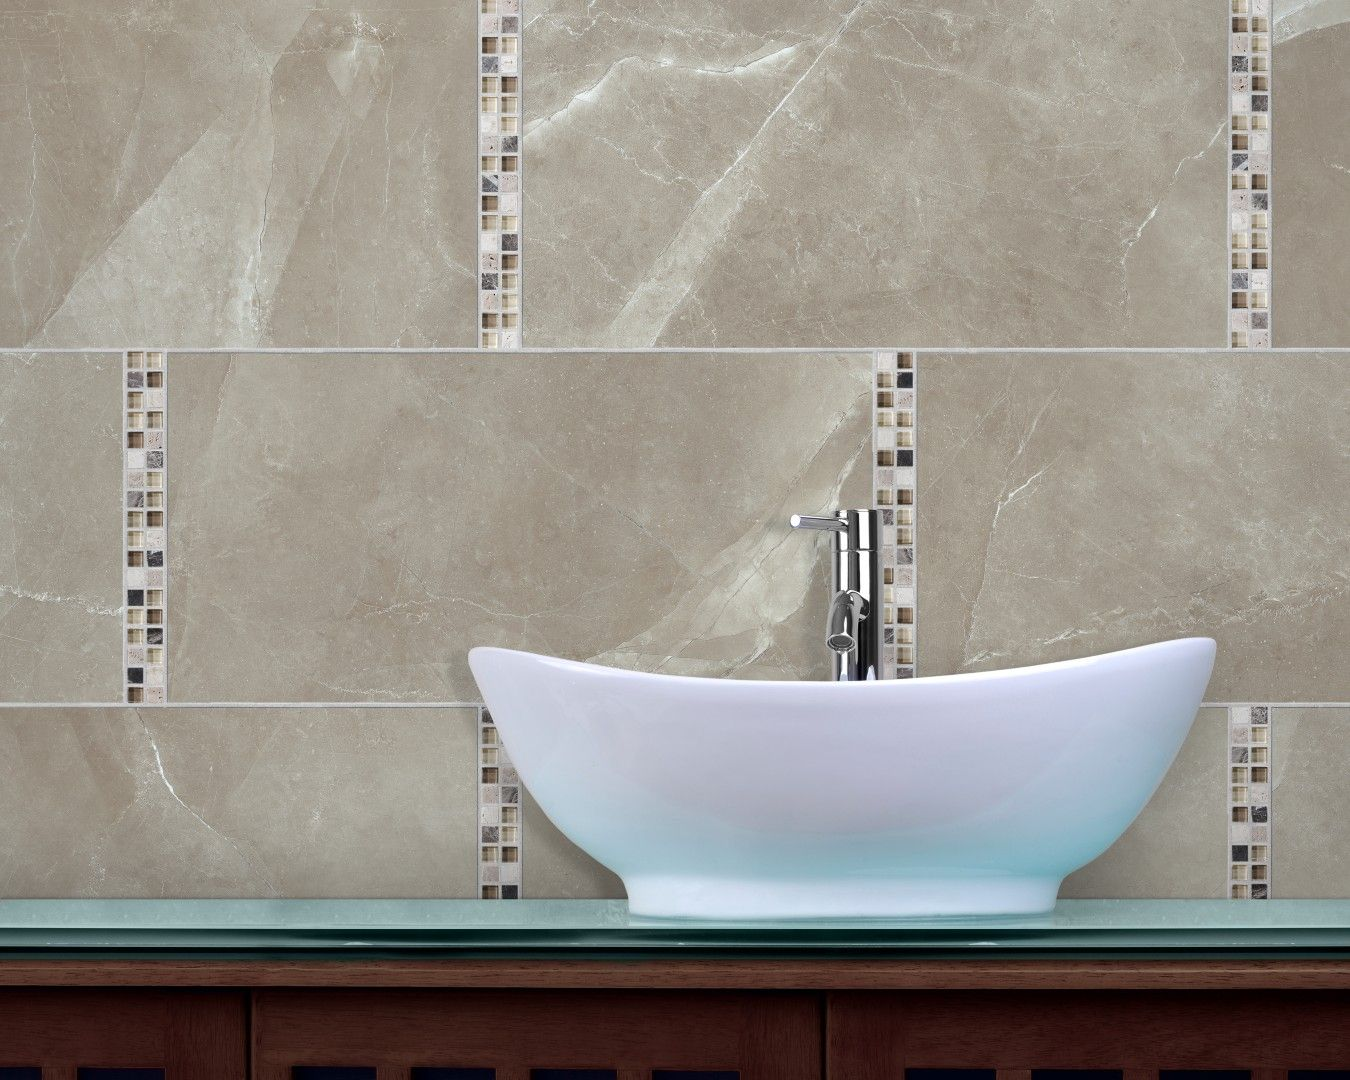 Pulpis moca high definition porcelain tile anatolia tile bath ceramic tileworks is your resource for porcelain tile in minnesota we also offer natural stone tile ceramic tile glass mosaic tile and natural stone dailygadgetfo Image collections